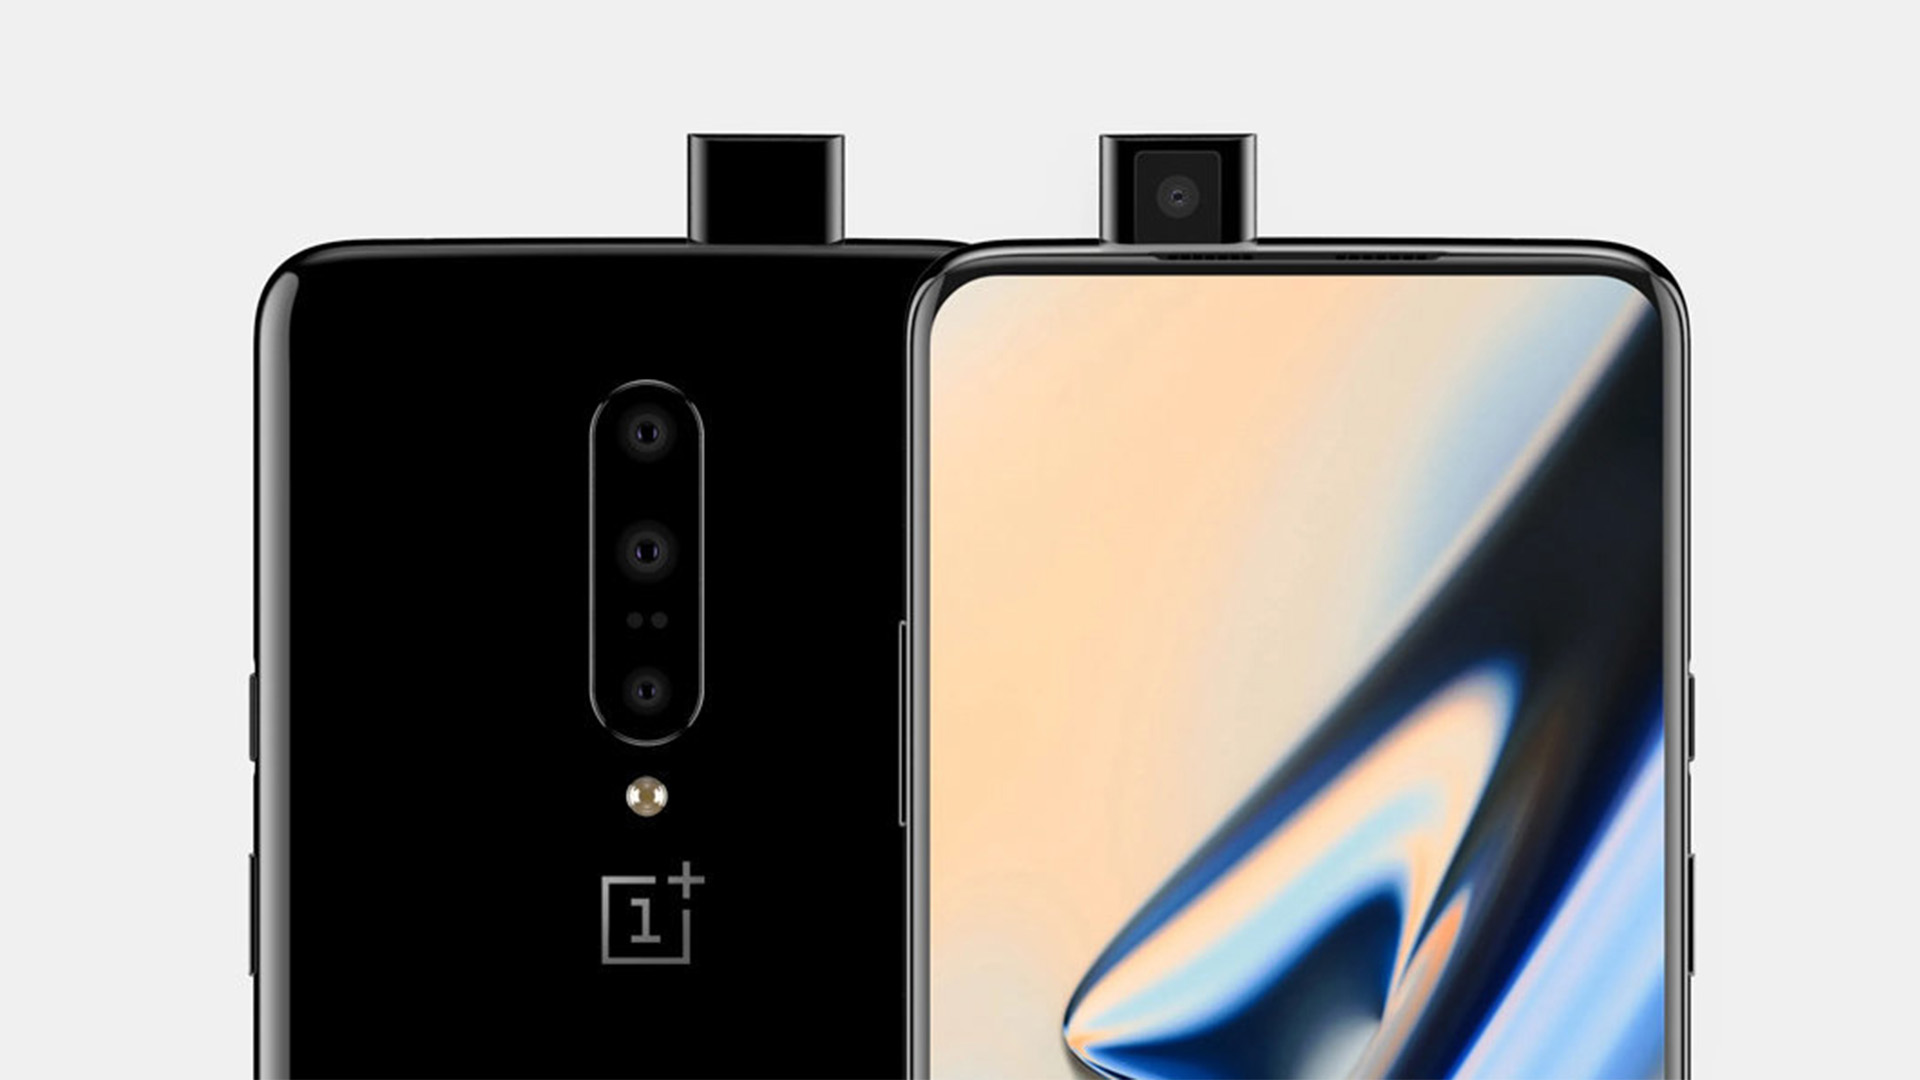 OnePlus 7 Pro Is Coming to T-Mobile - Here's When the